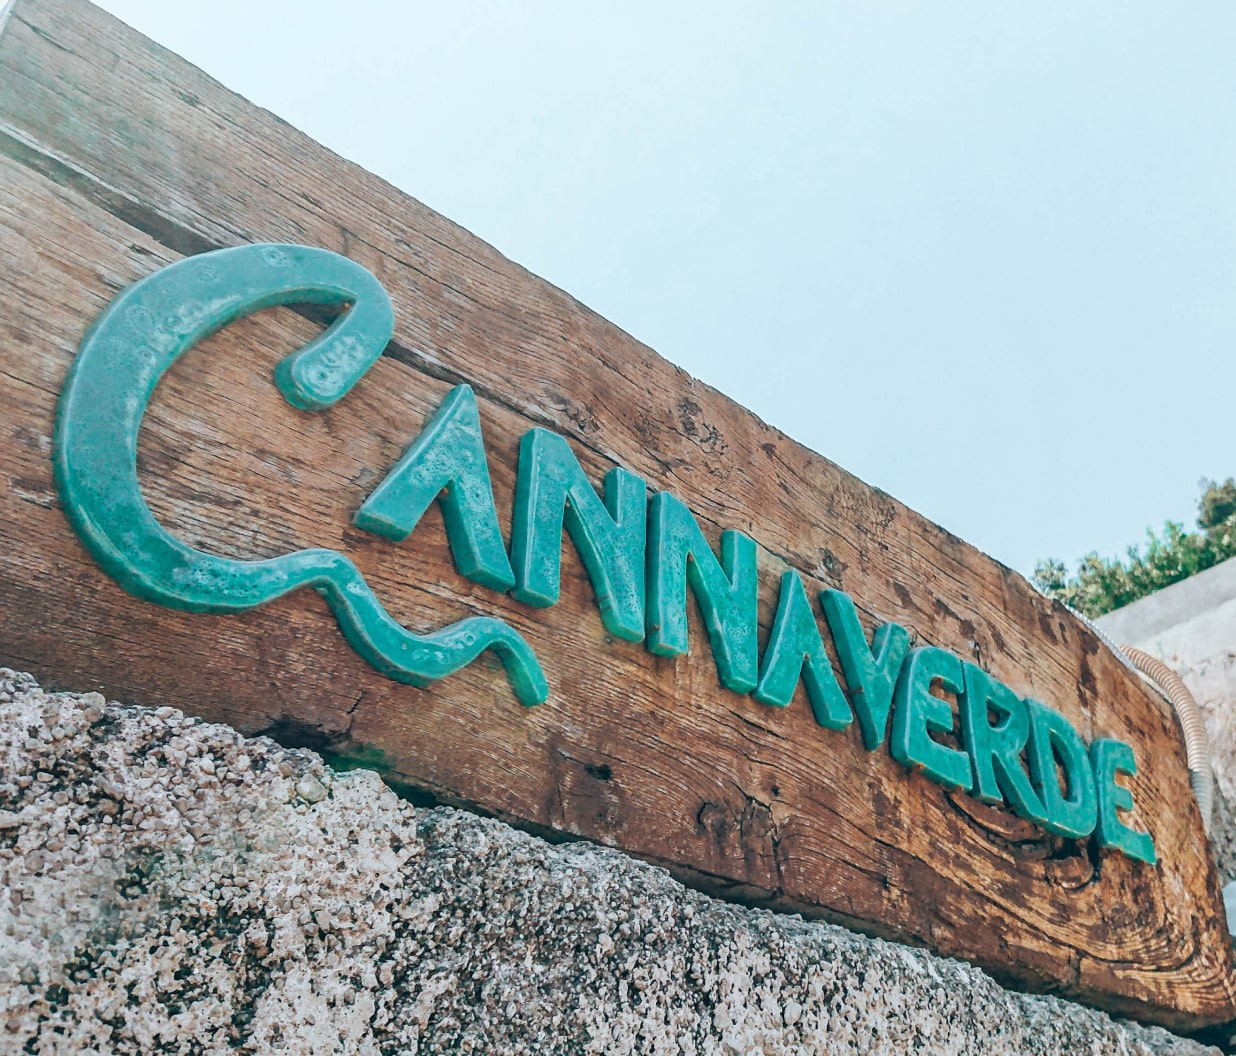 Cannaverde welcome sign in front of the entrance.